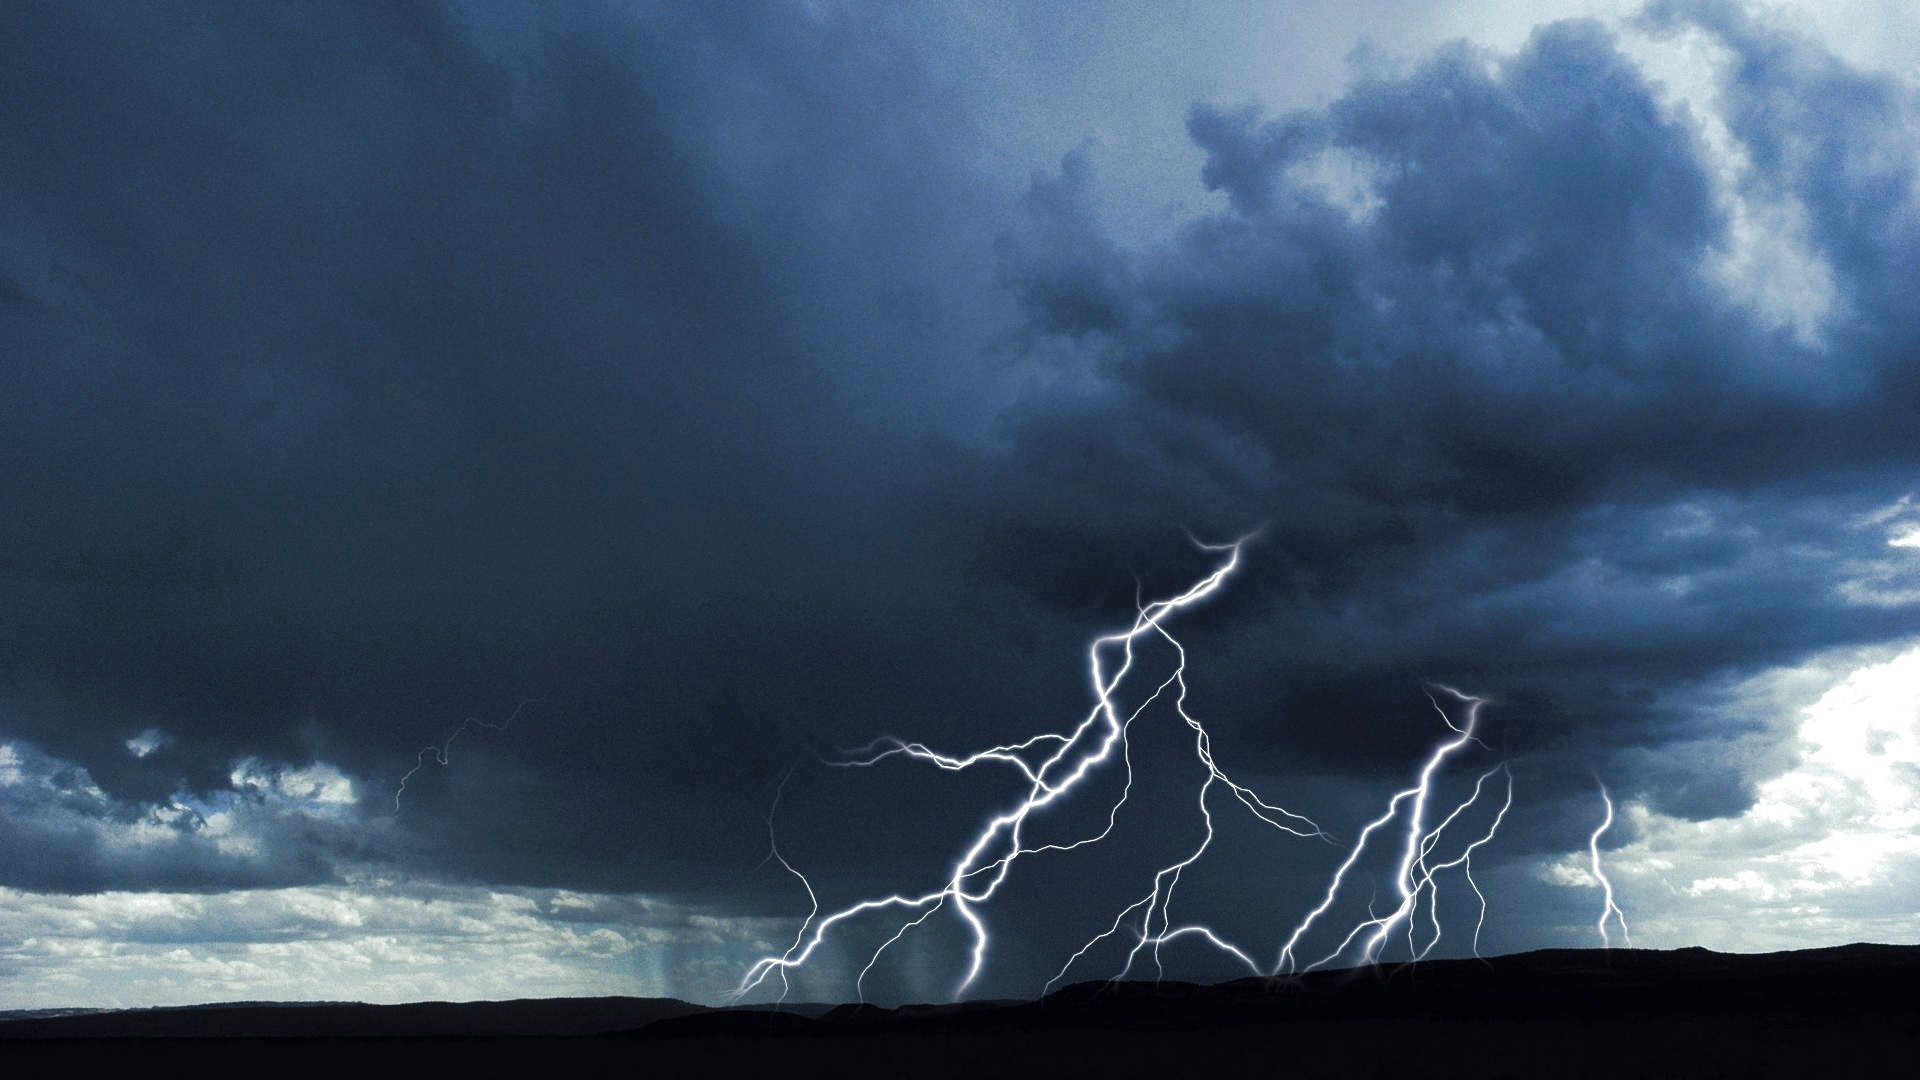 Thunderstorm Wallpaper 60 images 1920x1080